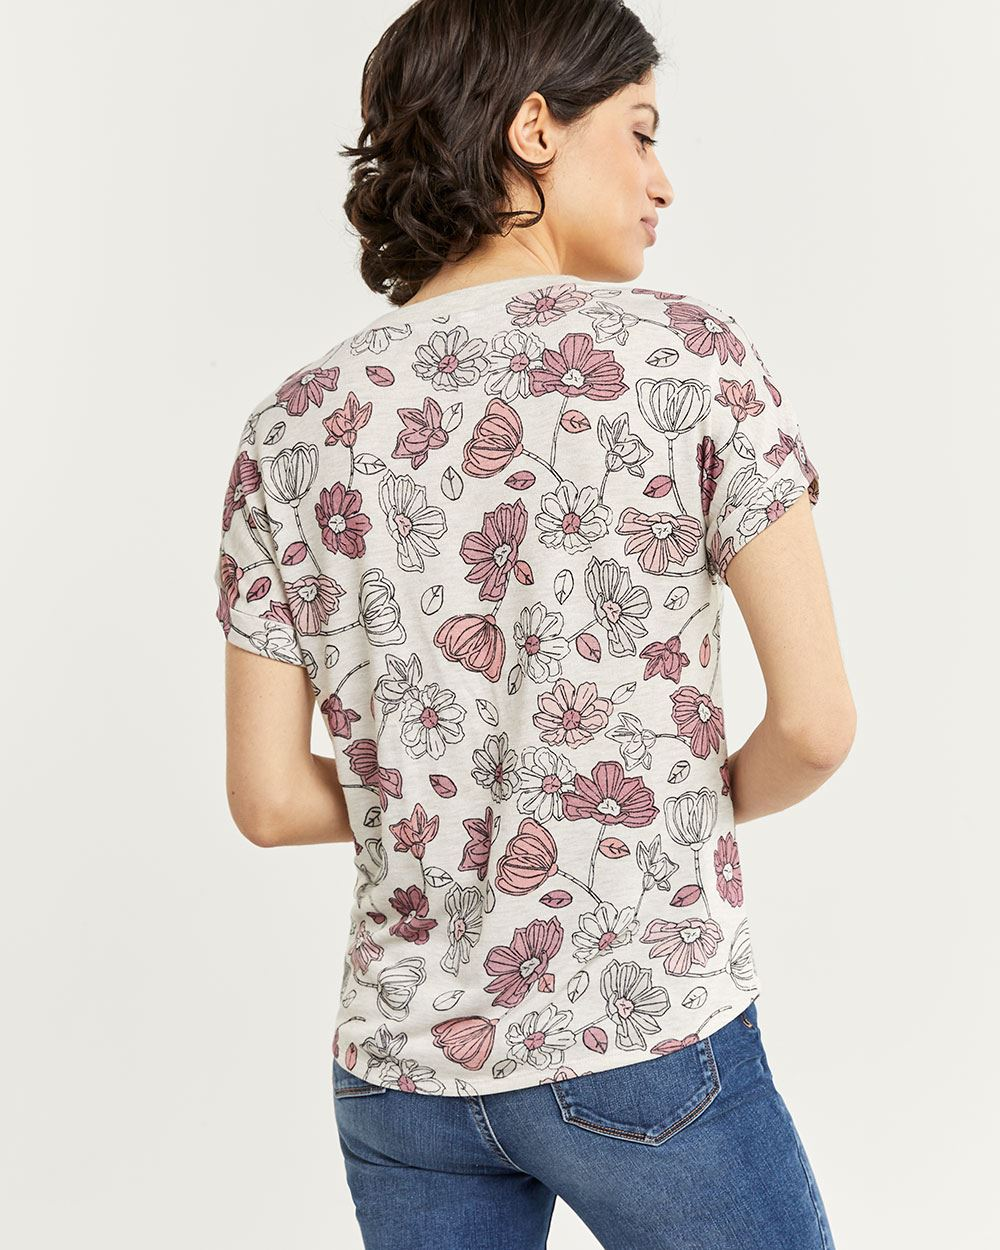 Short Sleeve Printed Tee with Decorative Buttons